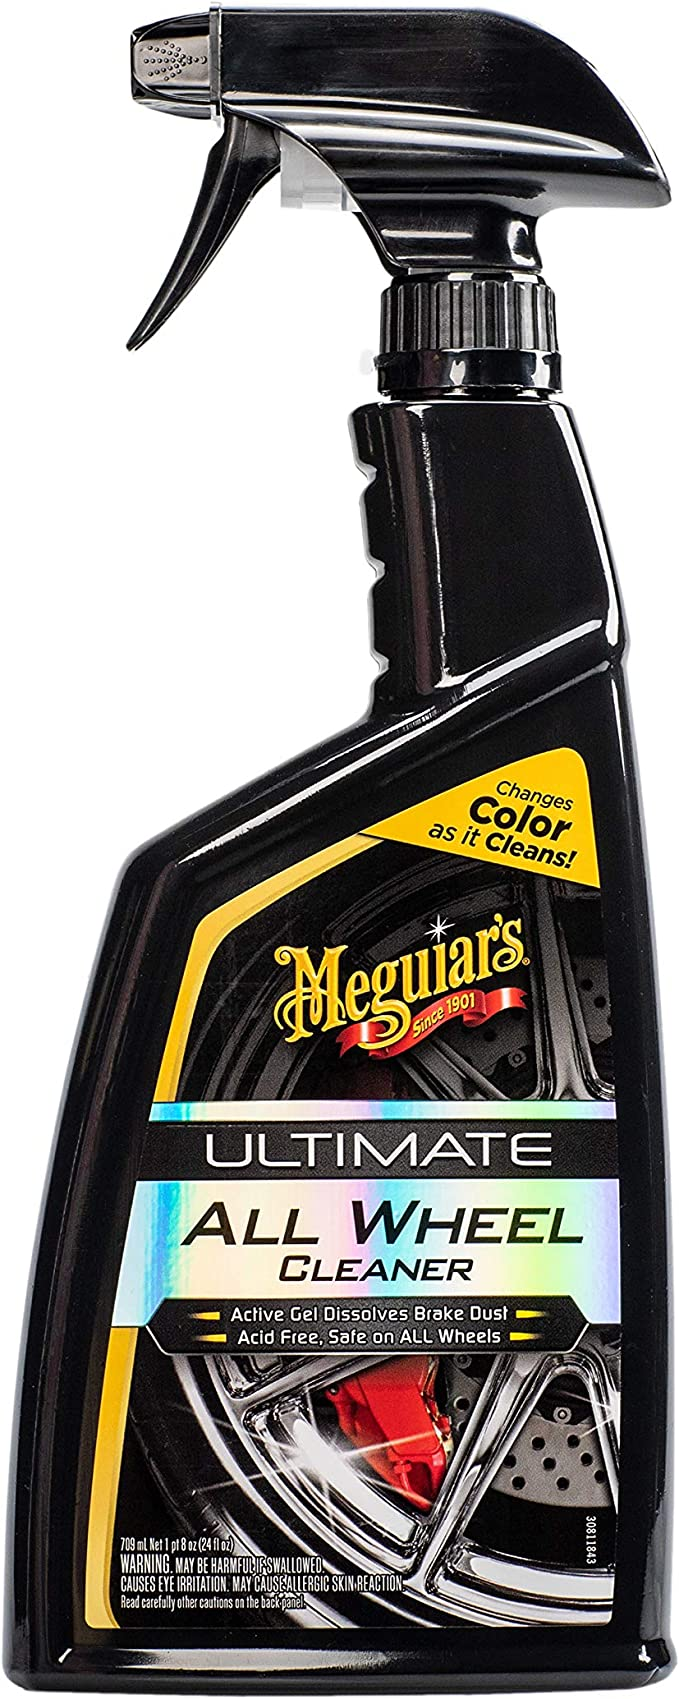 Meguiar's Ultimate All Wheel Cleaner, 24 oz